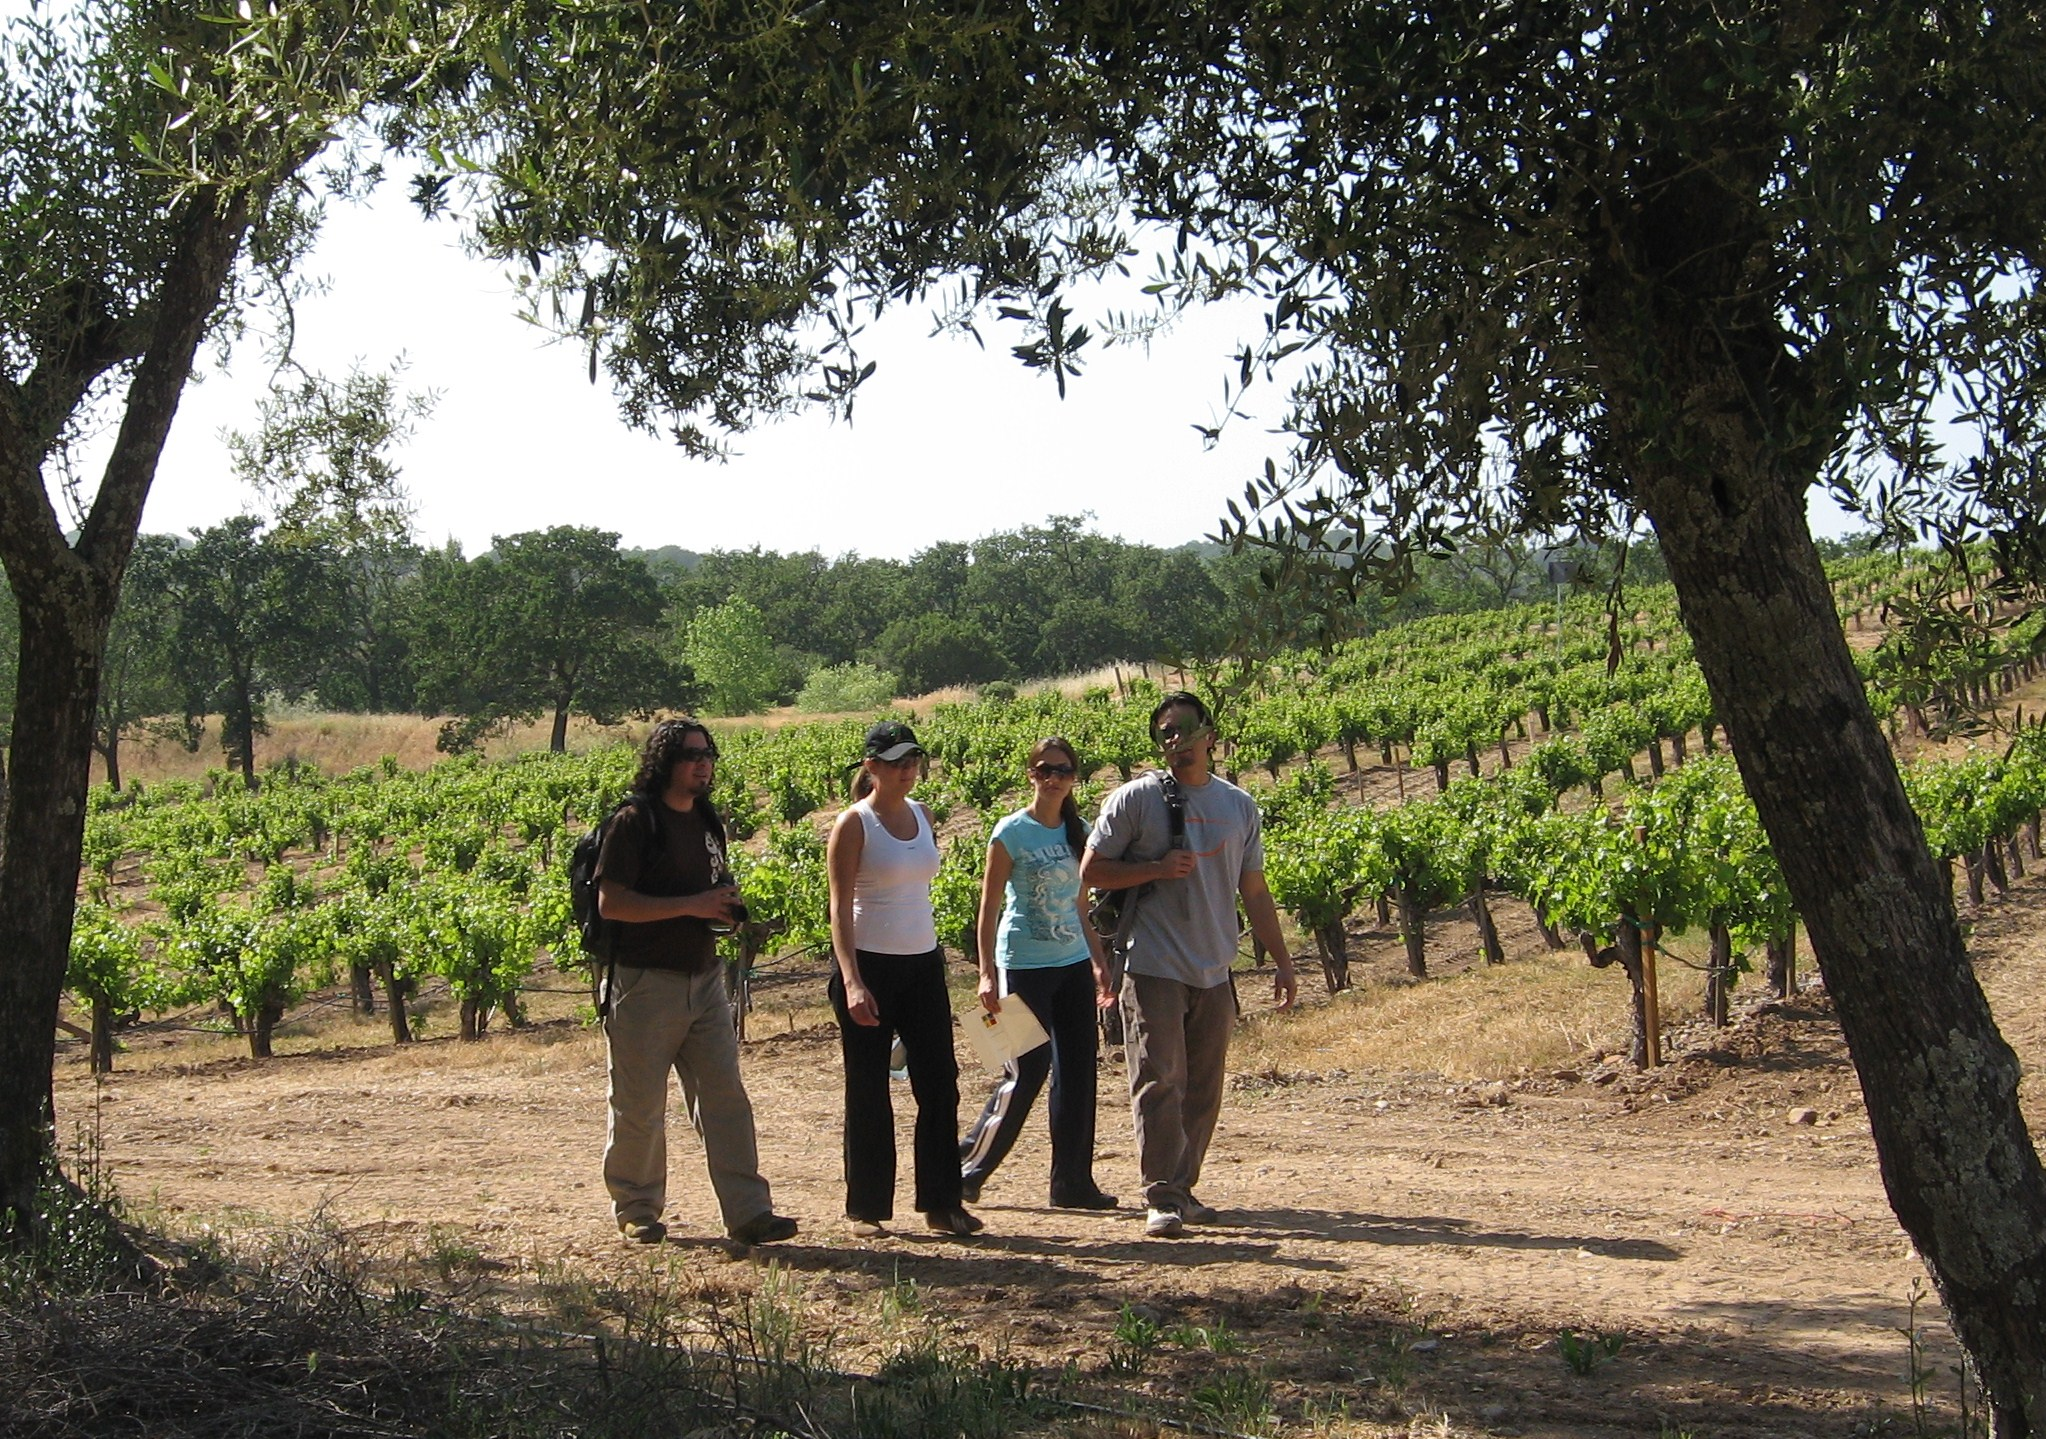 Group treks through vineyard on Wine Country Vacation